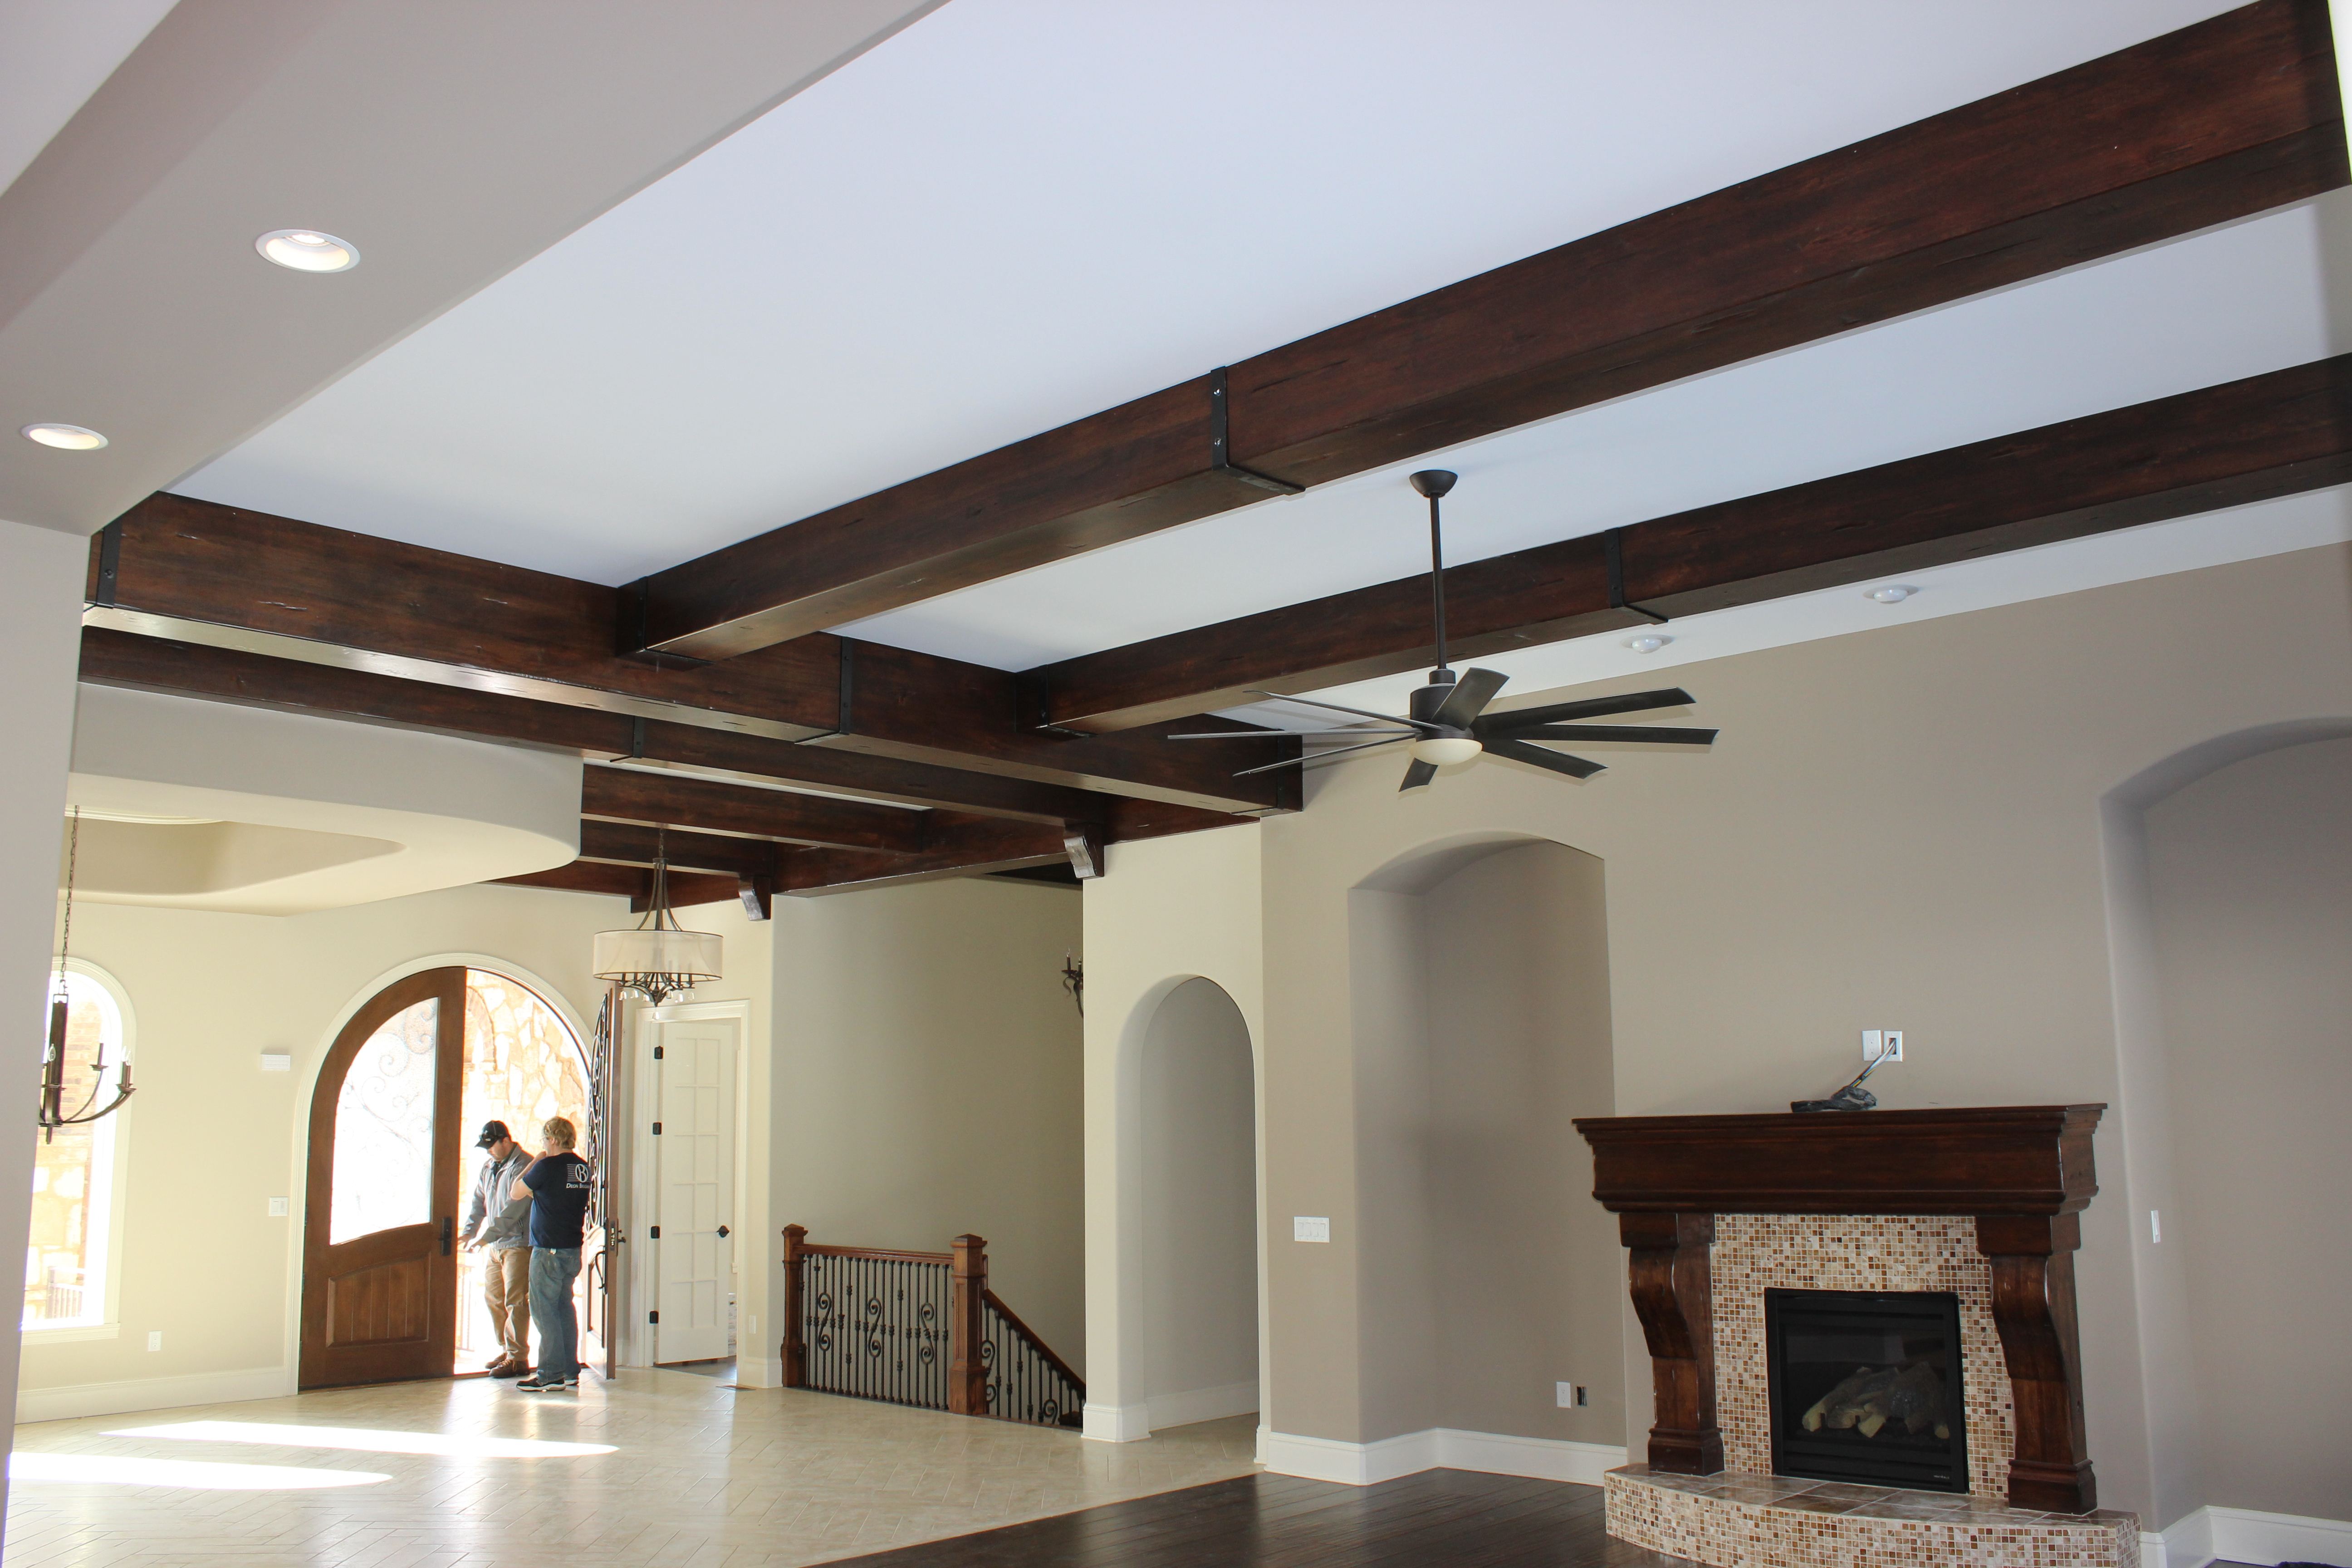 Lyptus hardwood beams